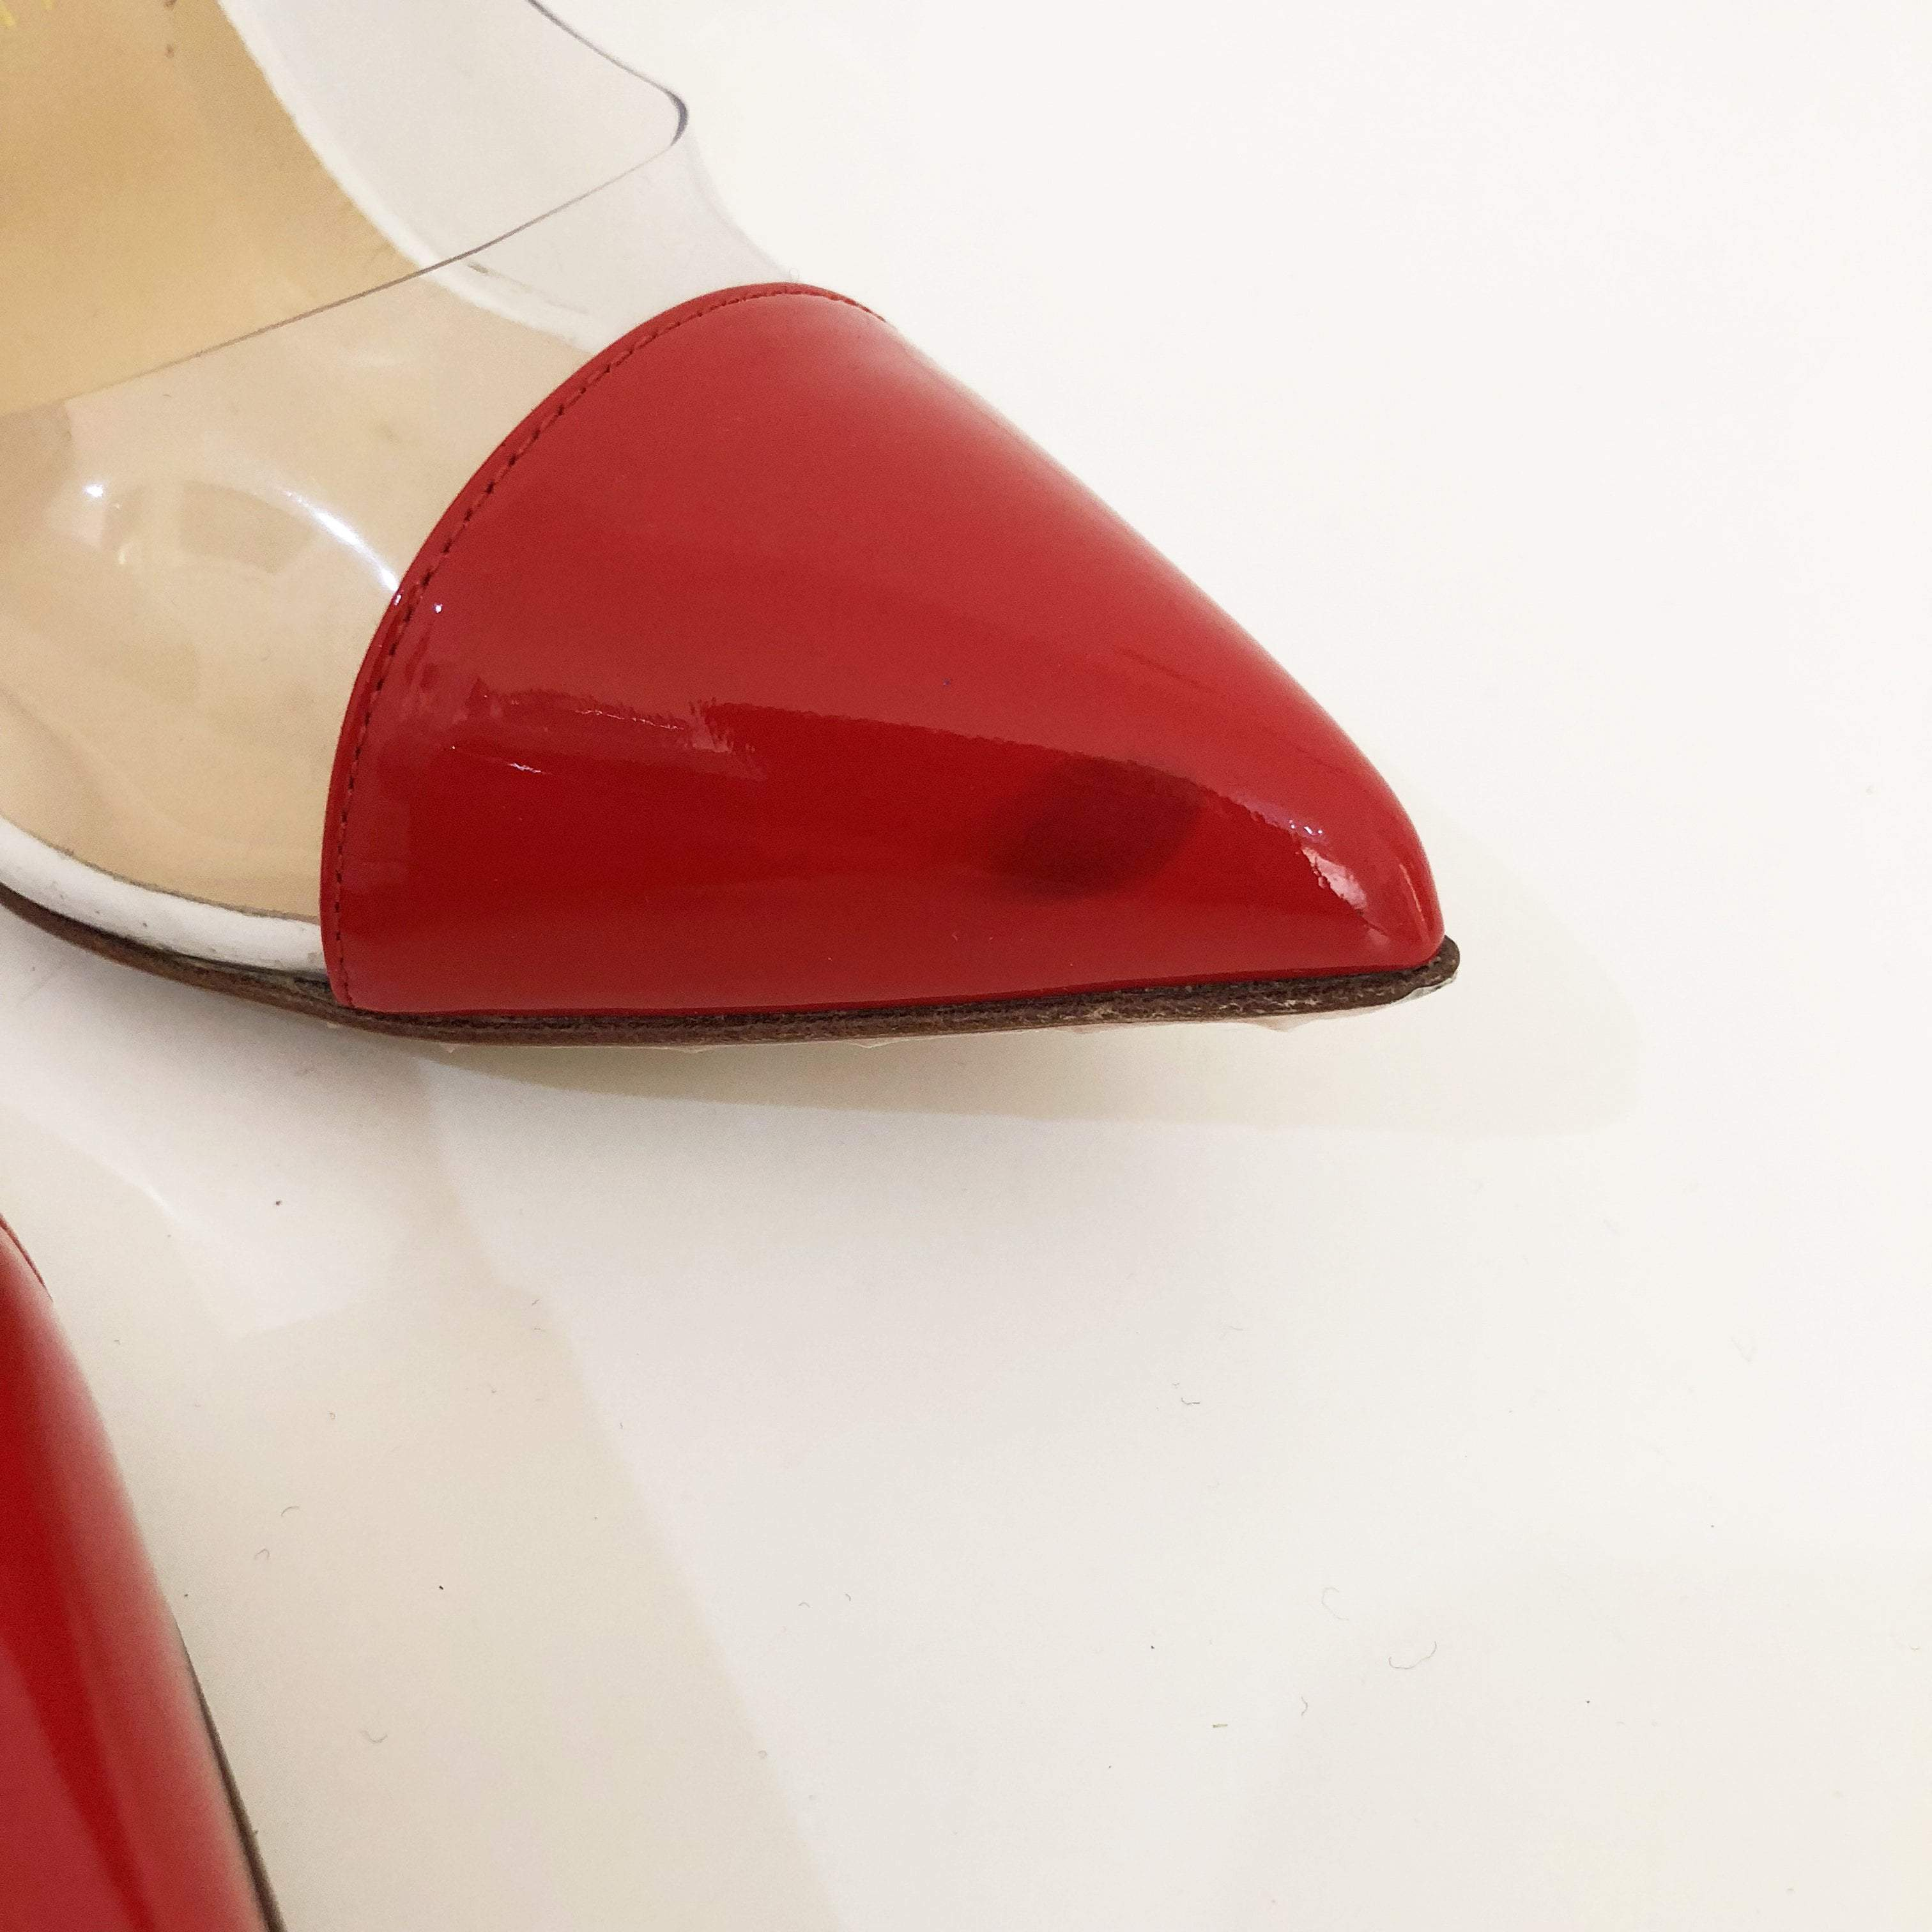 Christian Louboutin Debout Patent Leather PVC Pumps